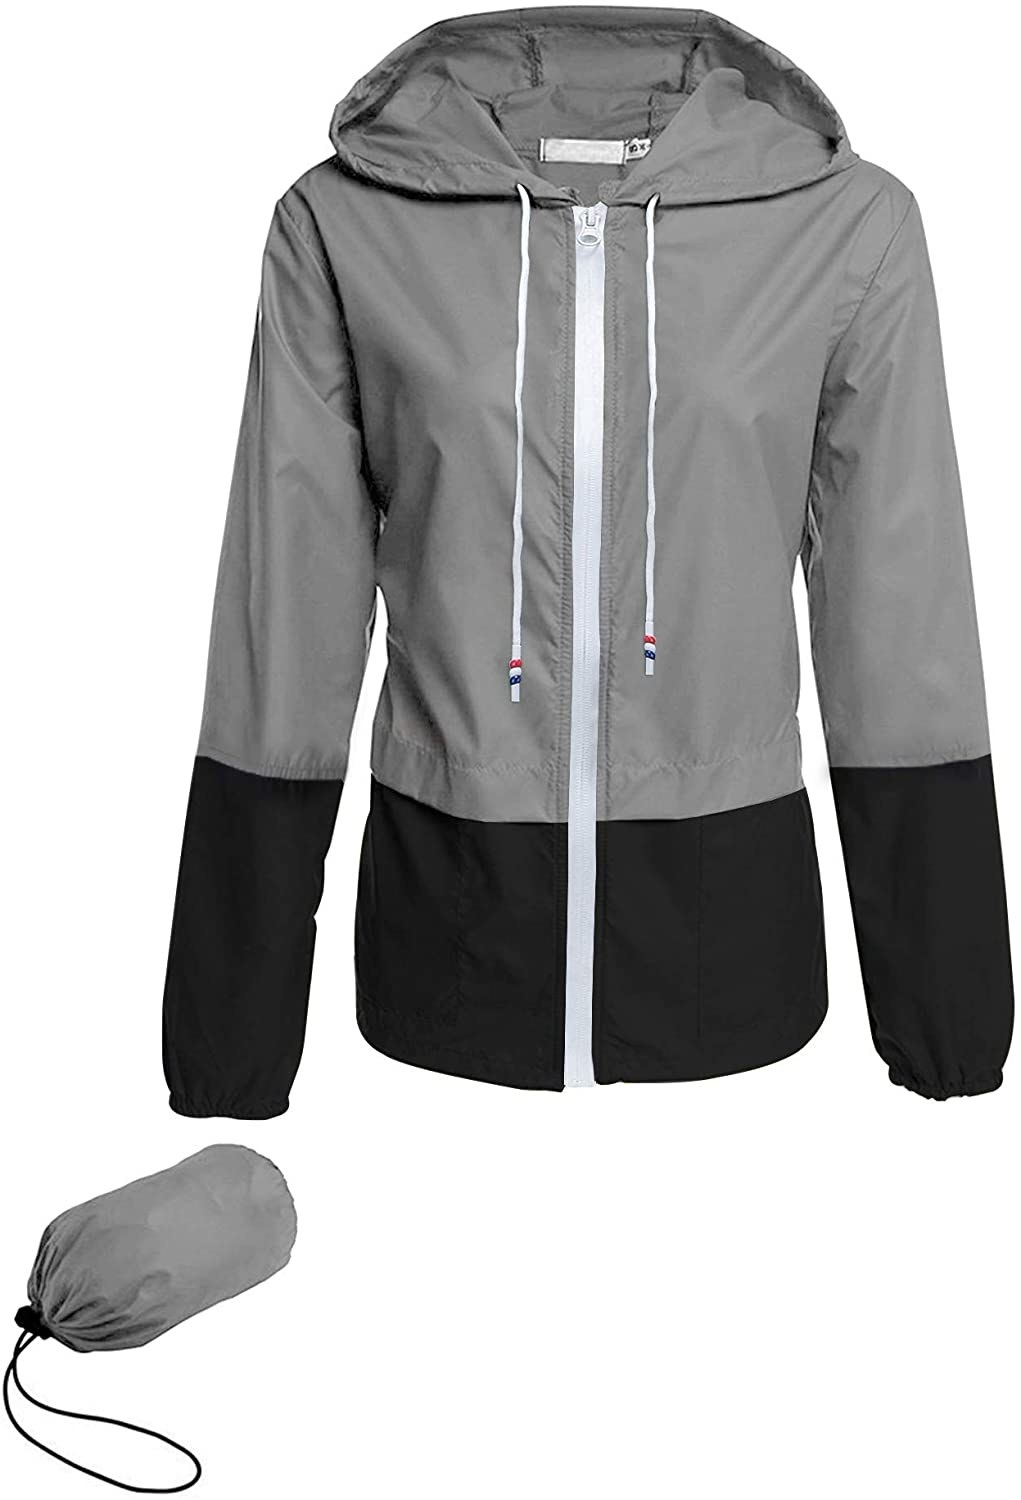 The two-tone grey jacket with the drawstring bag it packs into